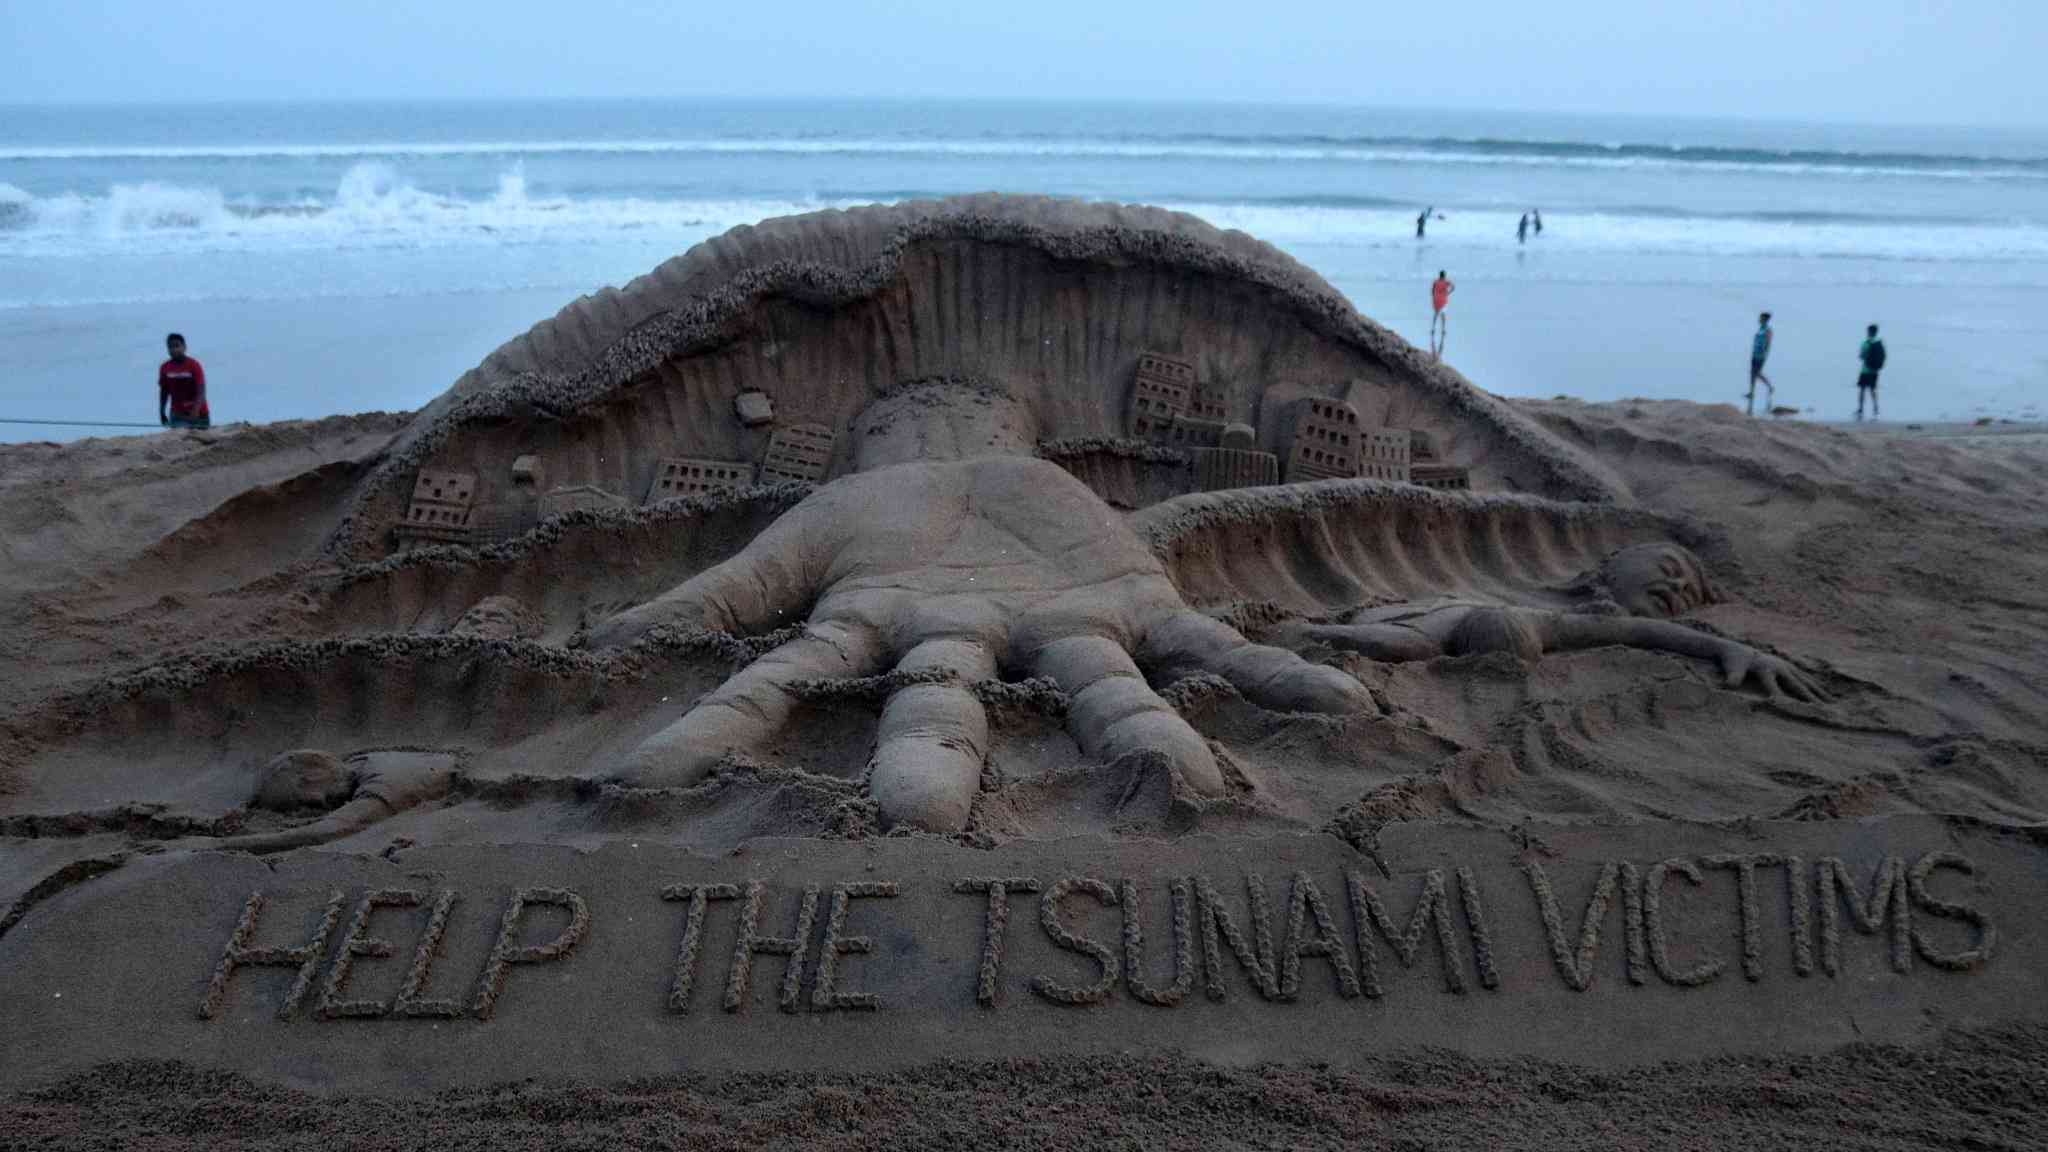 Indian artist creates sand sculpture to help Indonesia's tsunami victims